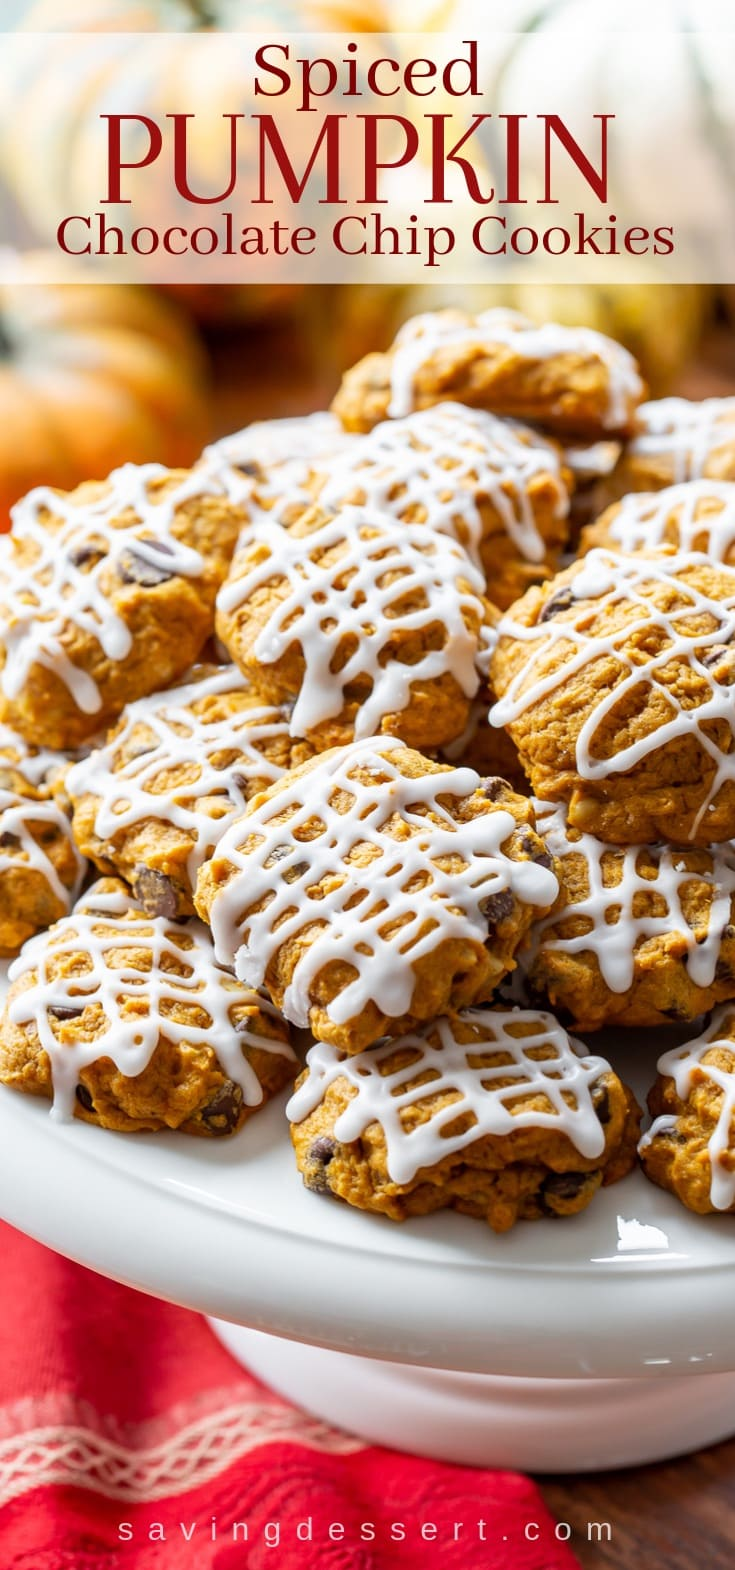 A stack of iced pumpkin chocolate chip cookies